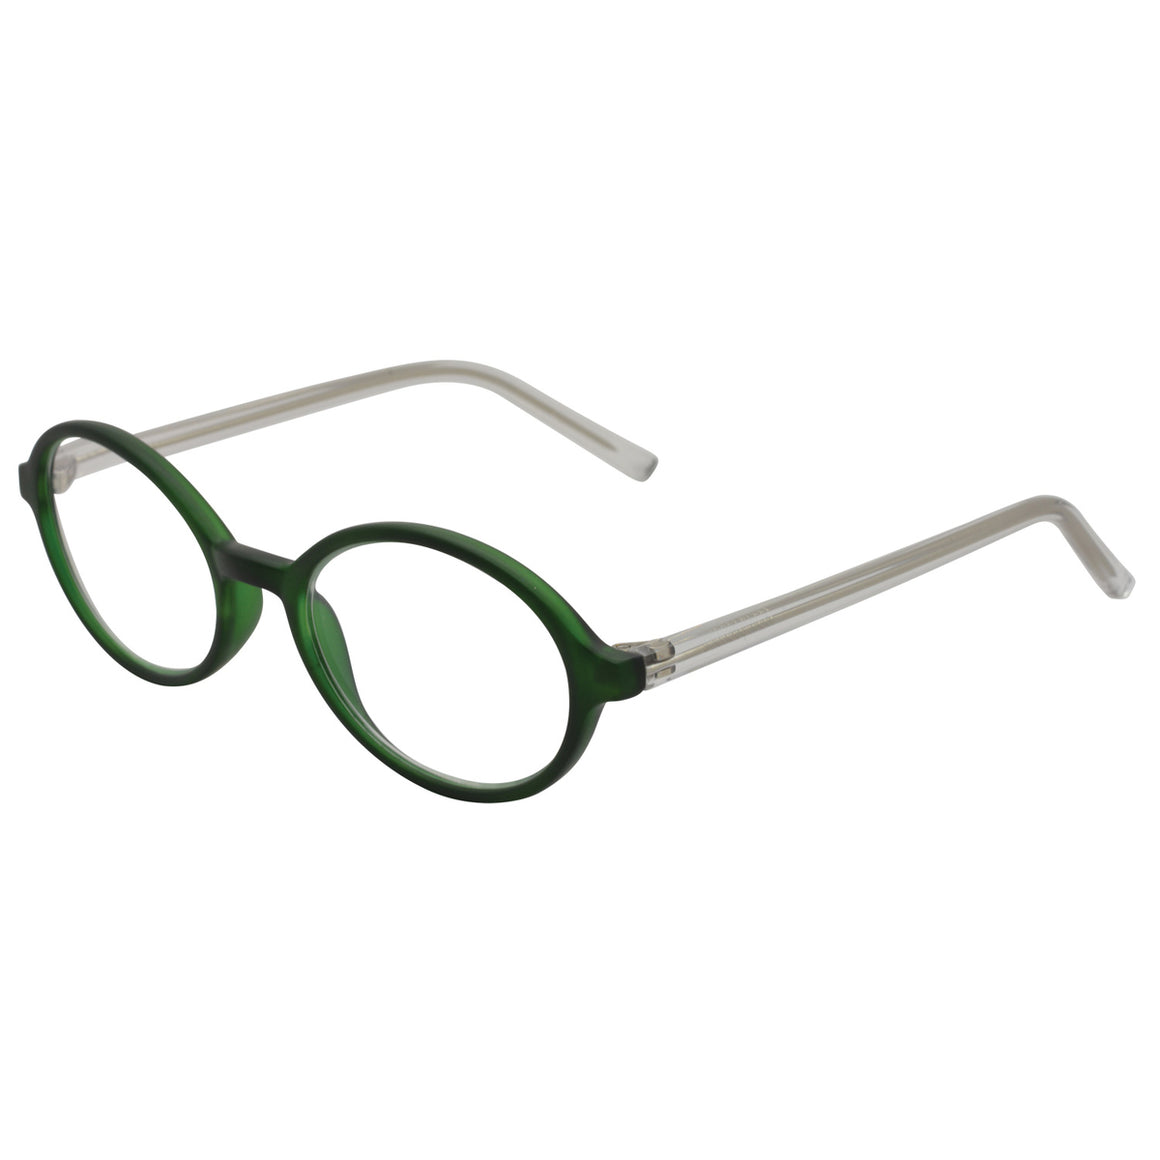 Brightly coloured green oval frame with clear temples